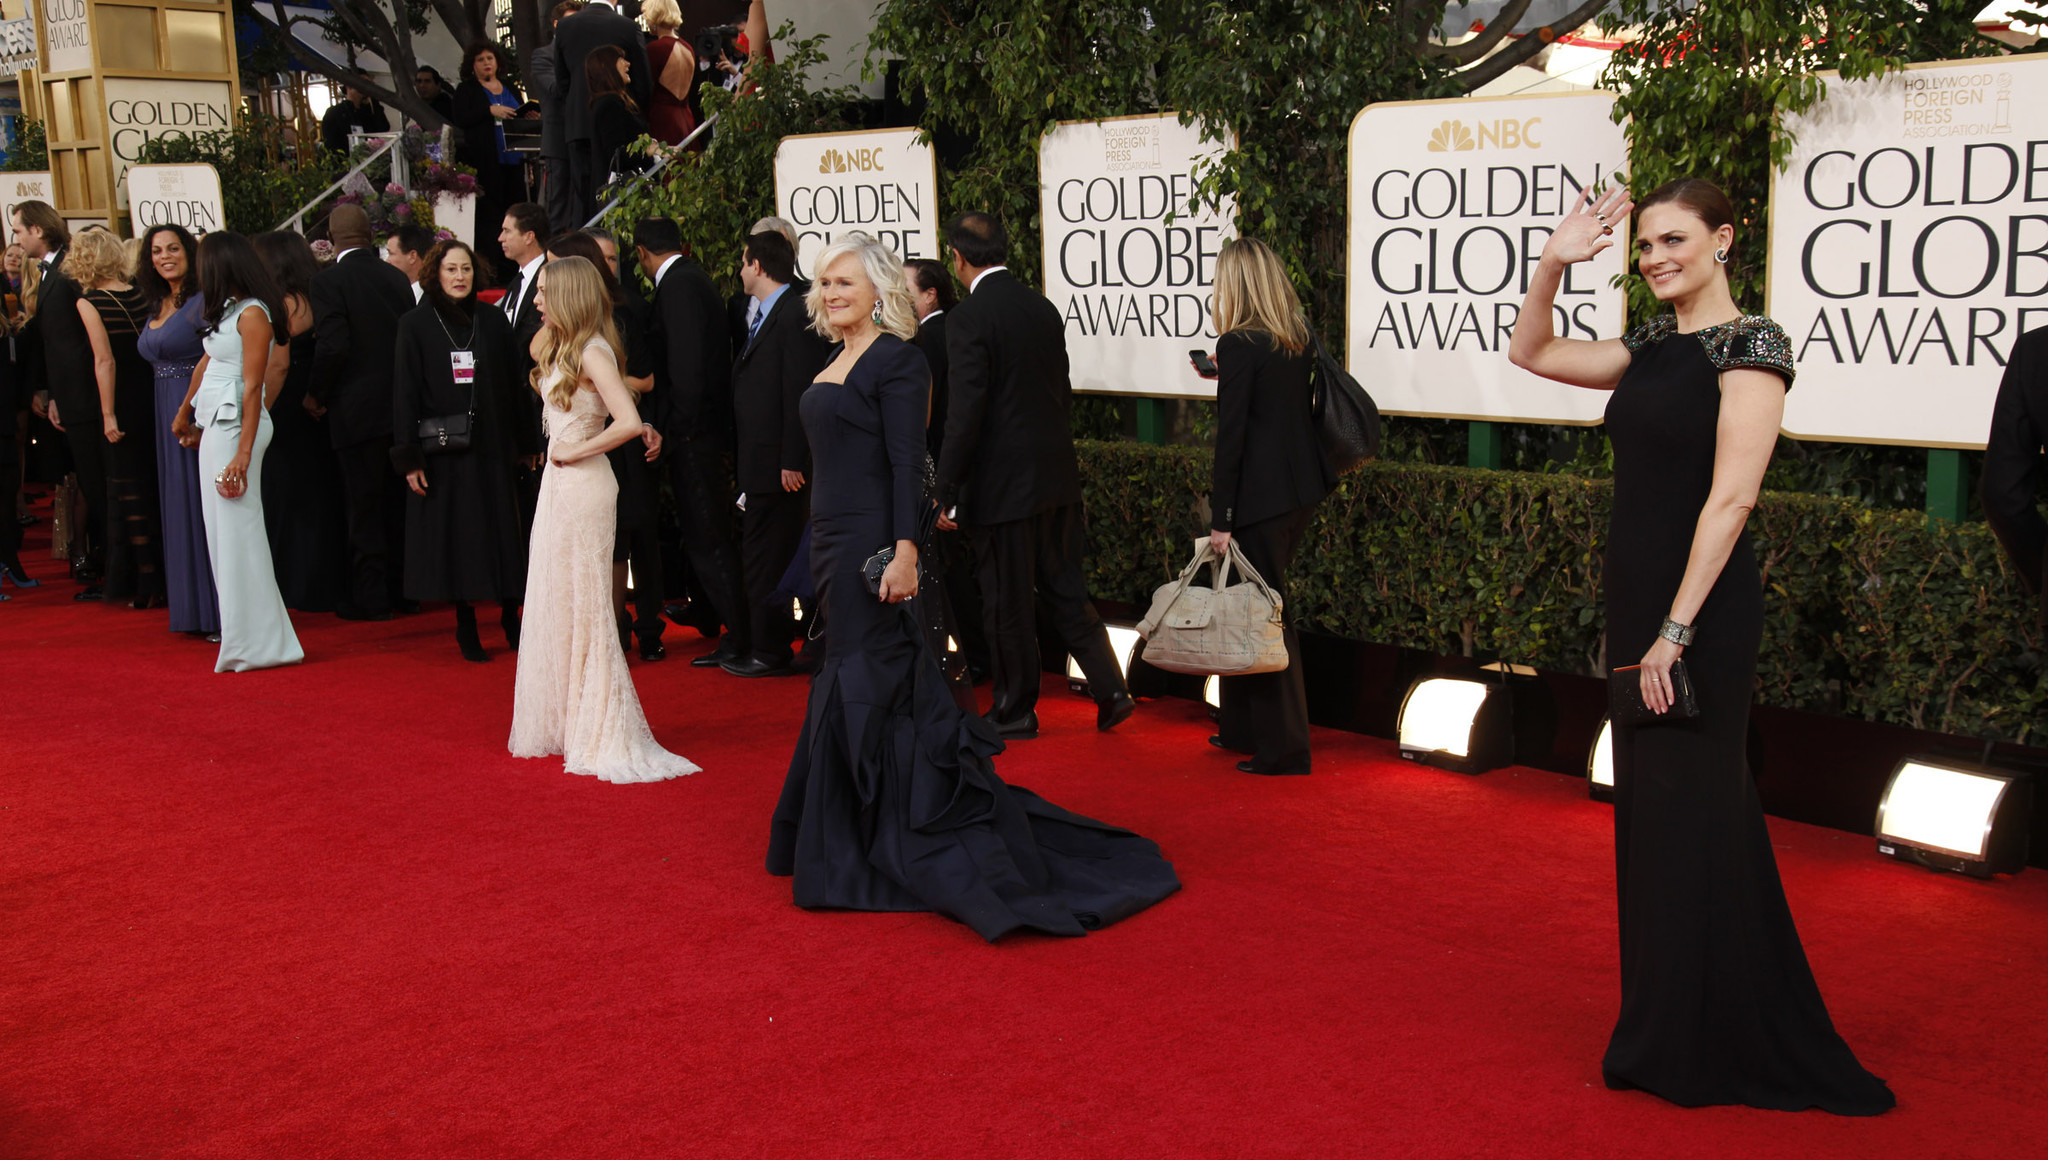 How To Stream Golden Globes Live